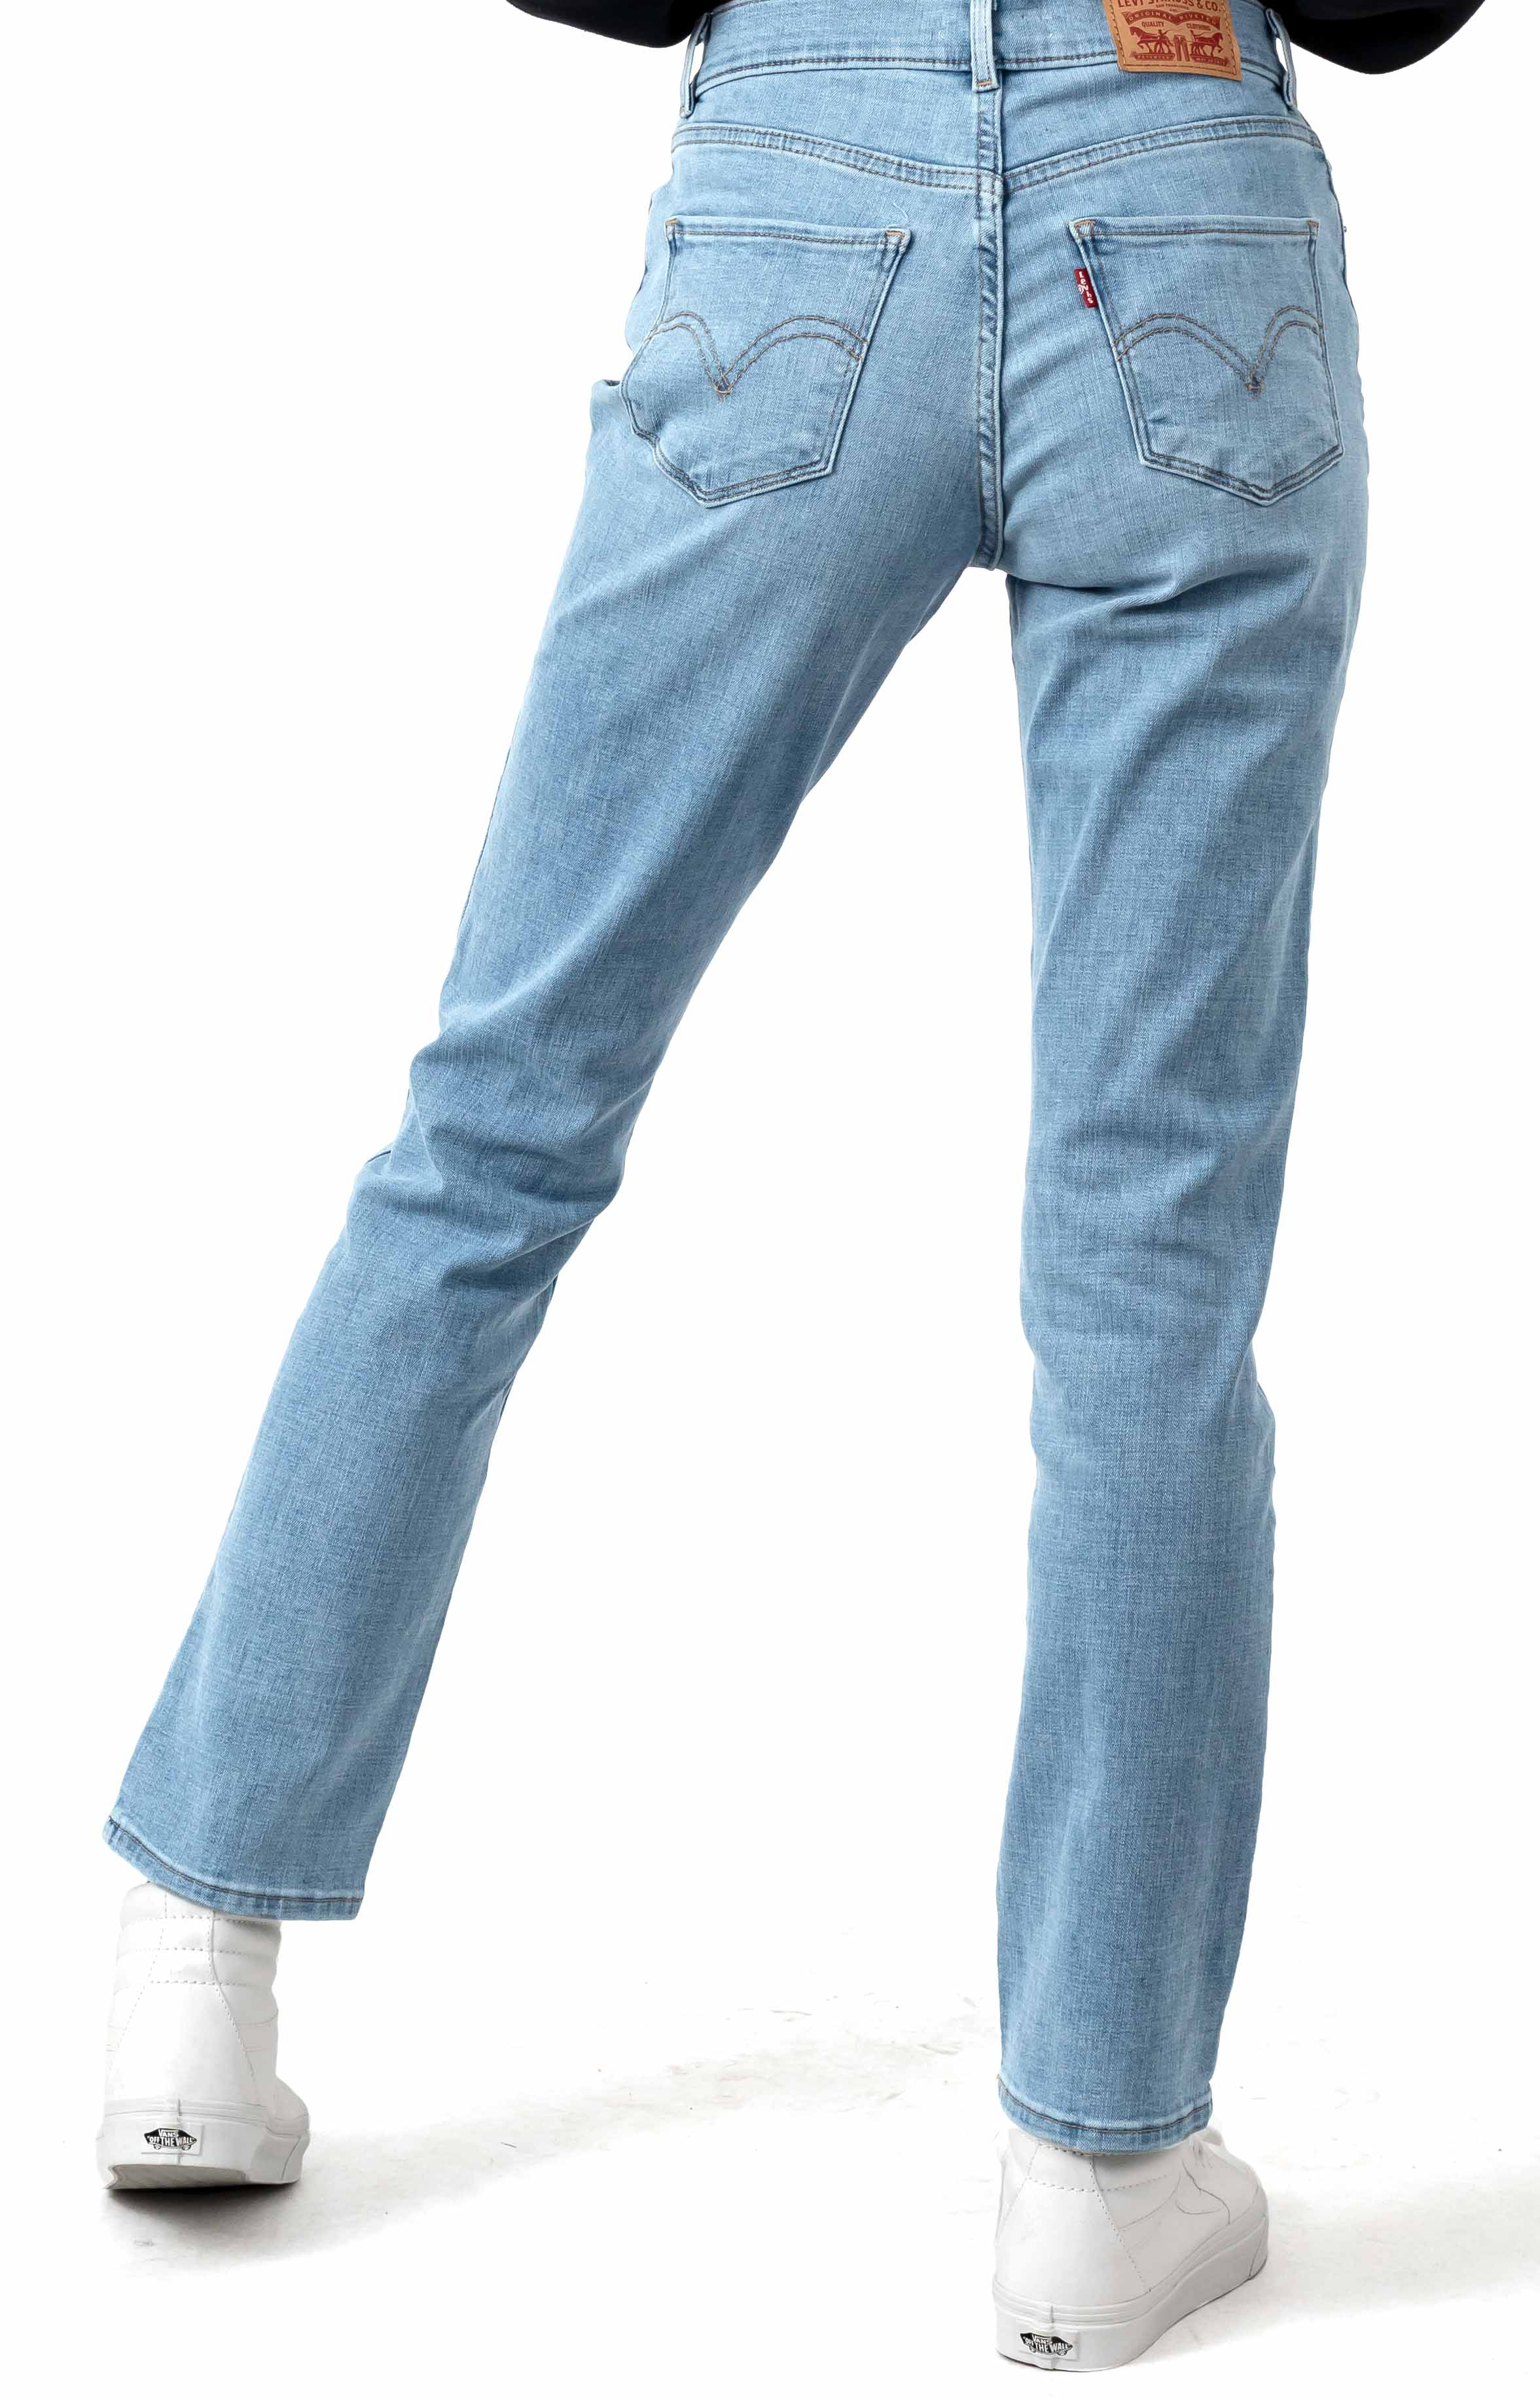 Classic Straight Slate Jeans - Oahu Morning Dew 3